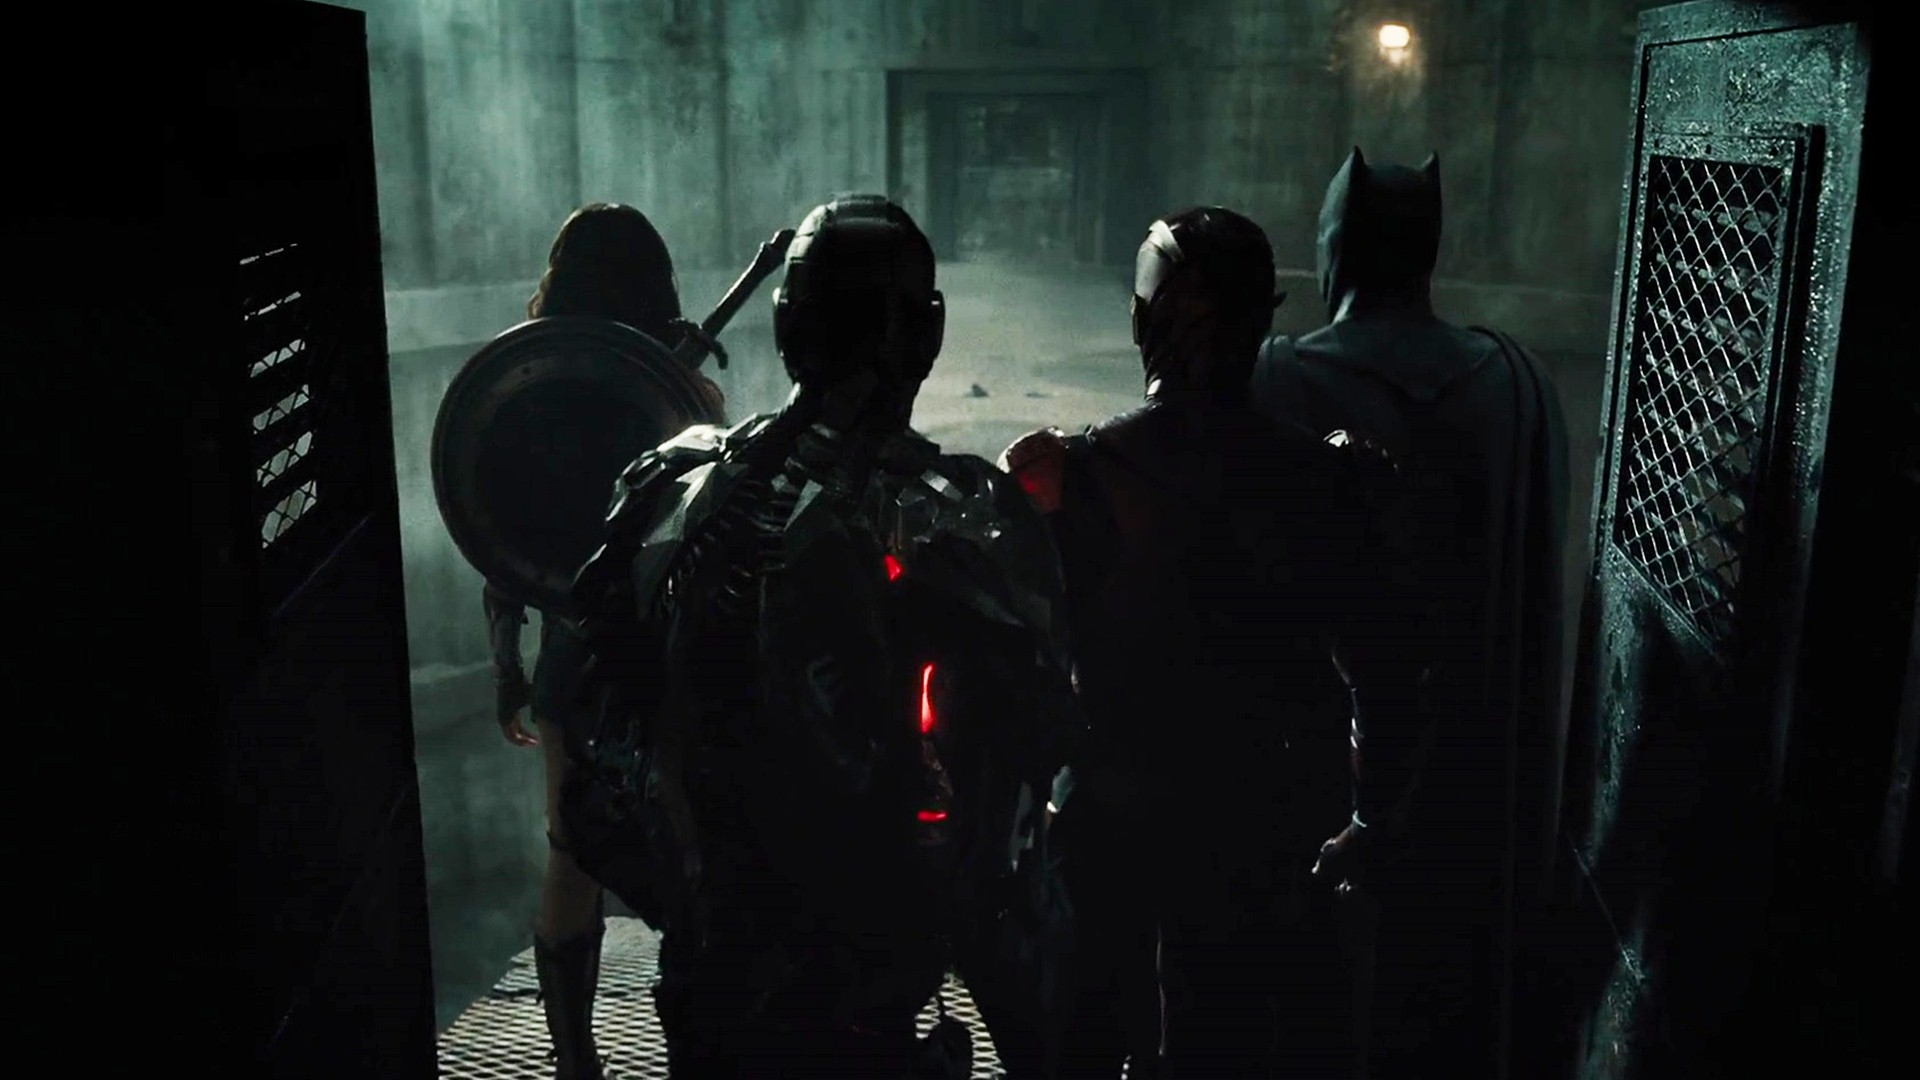 Justice League Hd Wallpapers In High Definition All Hd Wallpapers